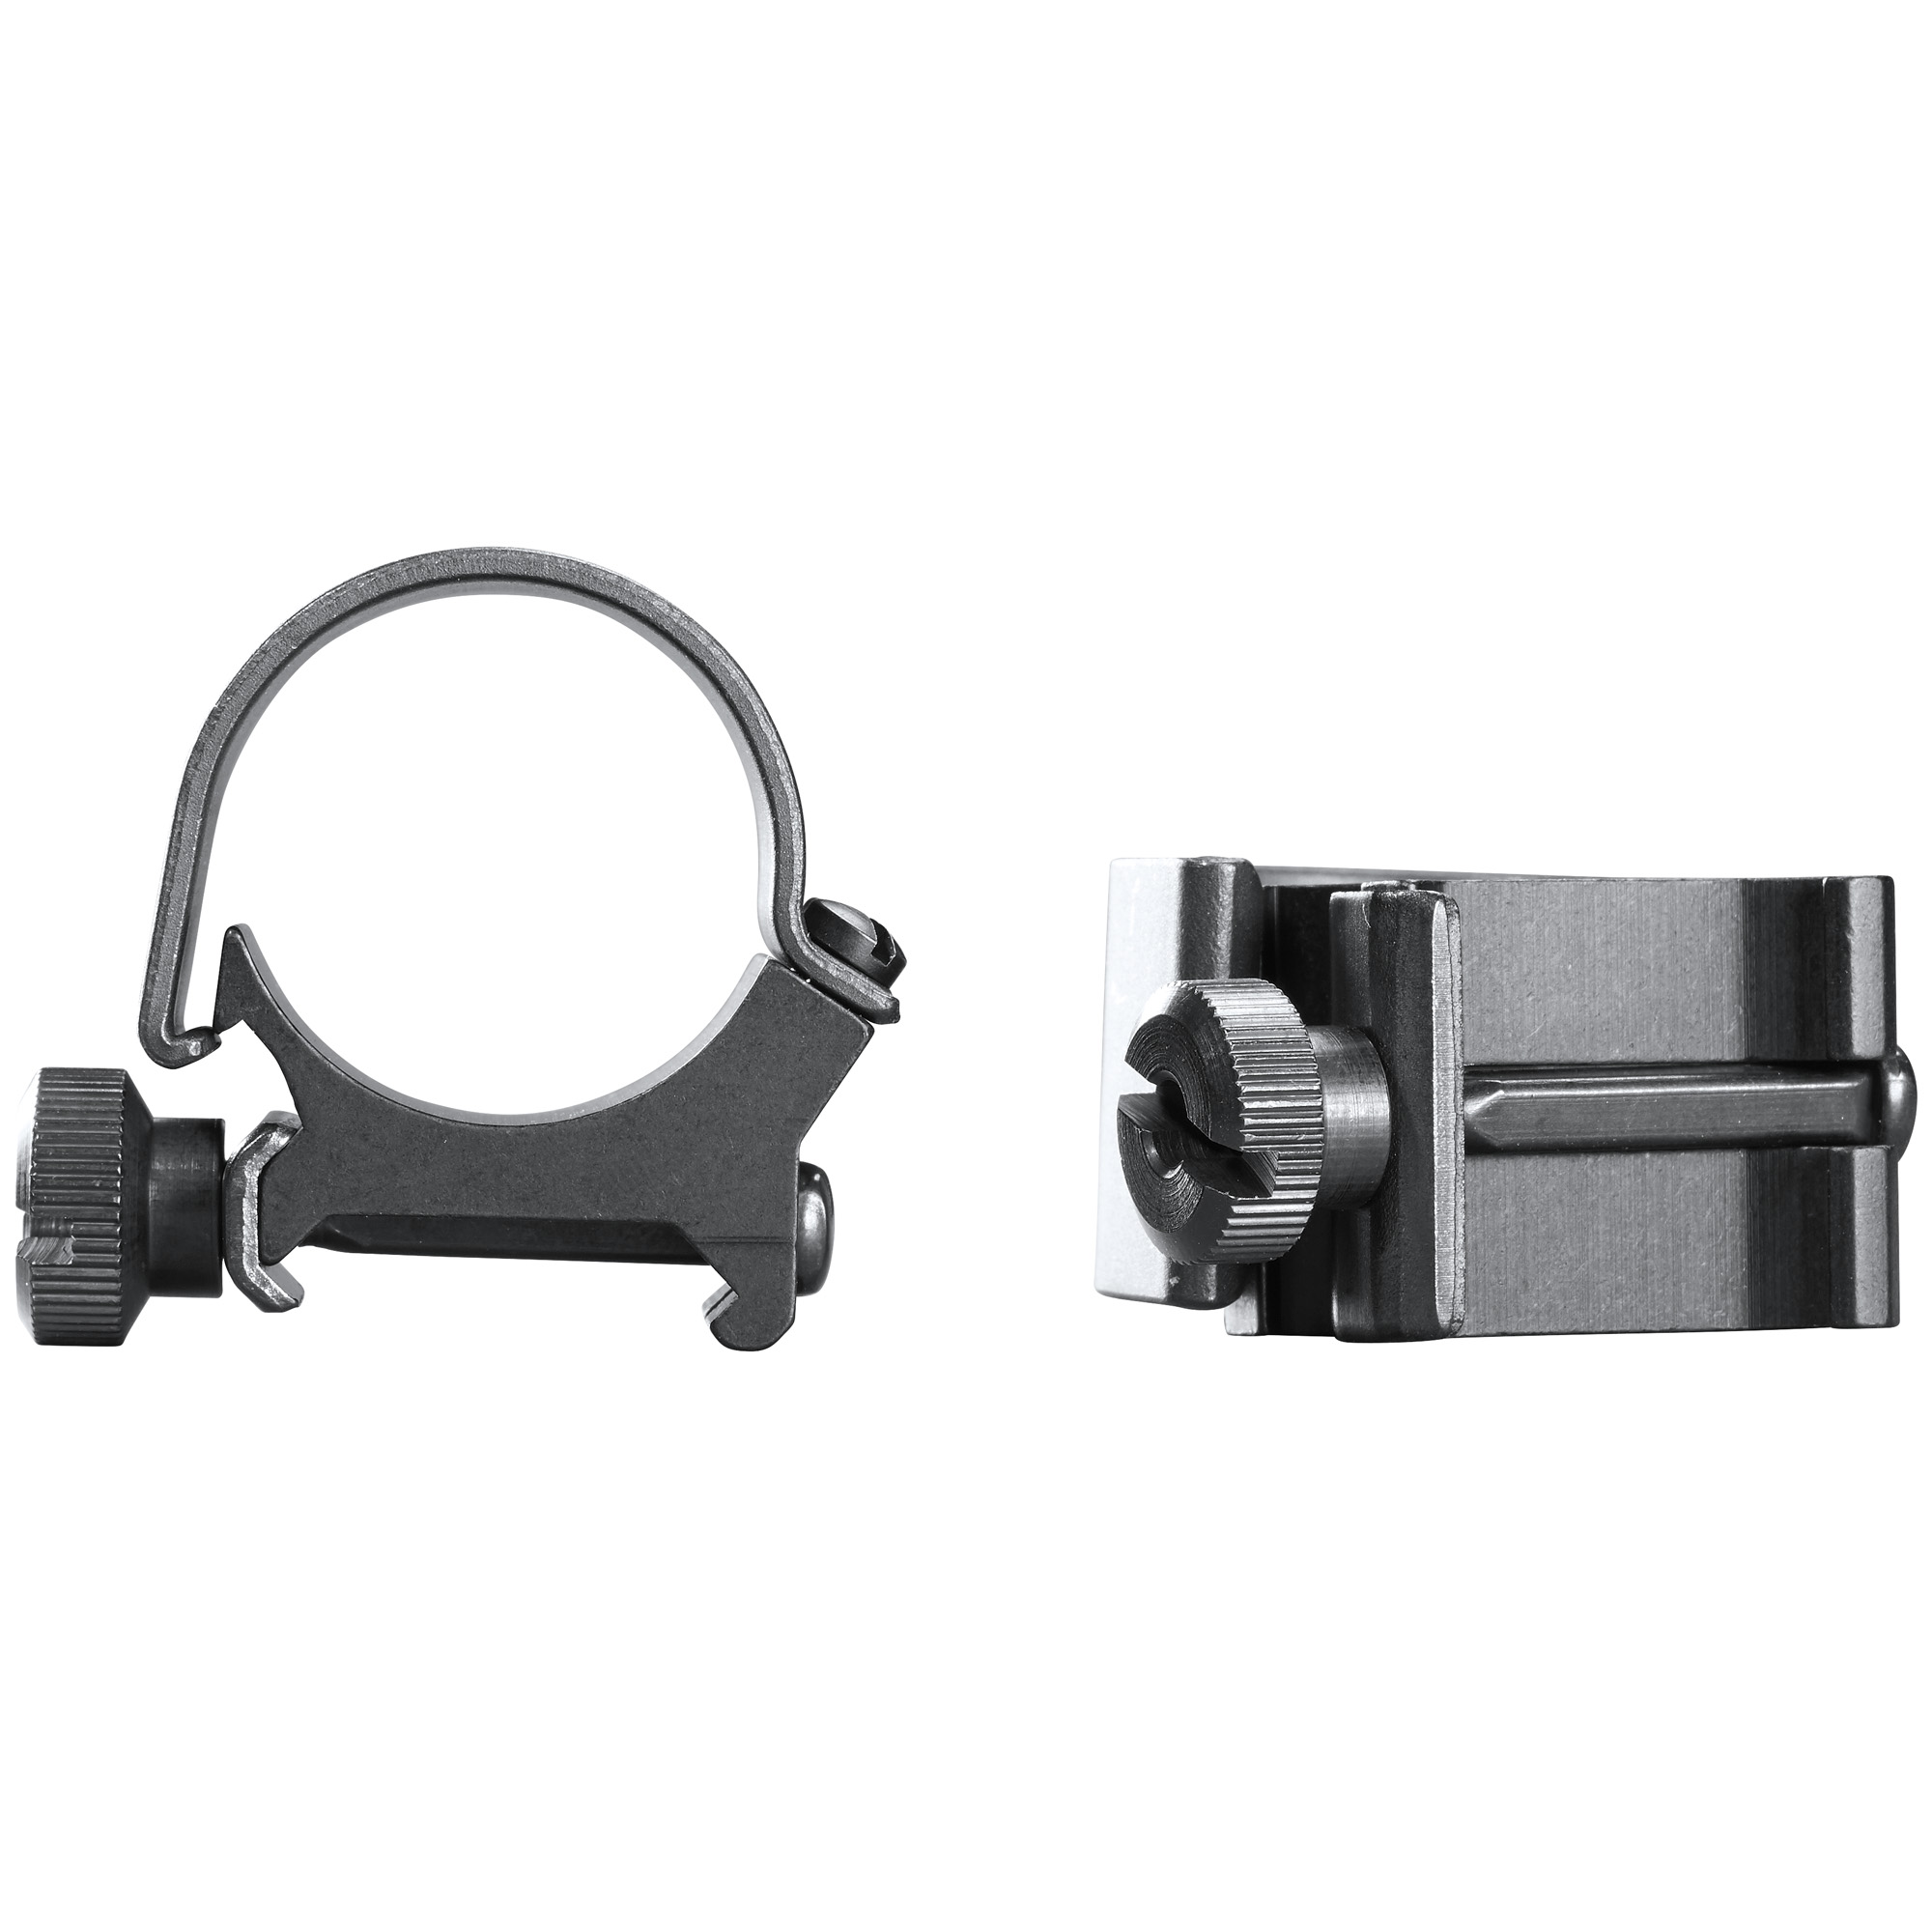 Get the best of both worlds with a steel strap for added strength and an aluminum saddle for reduced weight. These quick detach rings are the Original Weaver style Rings.